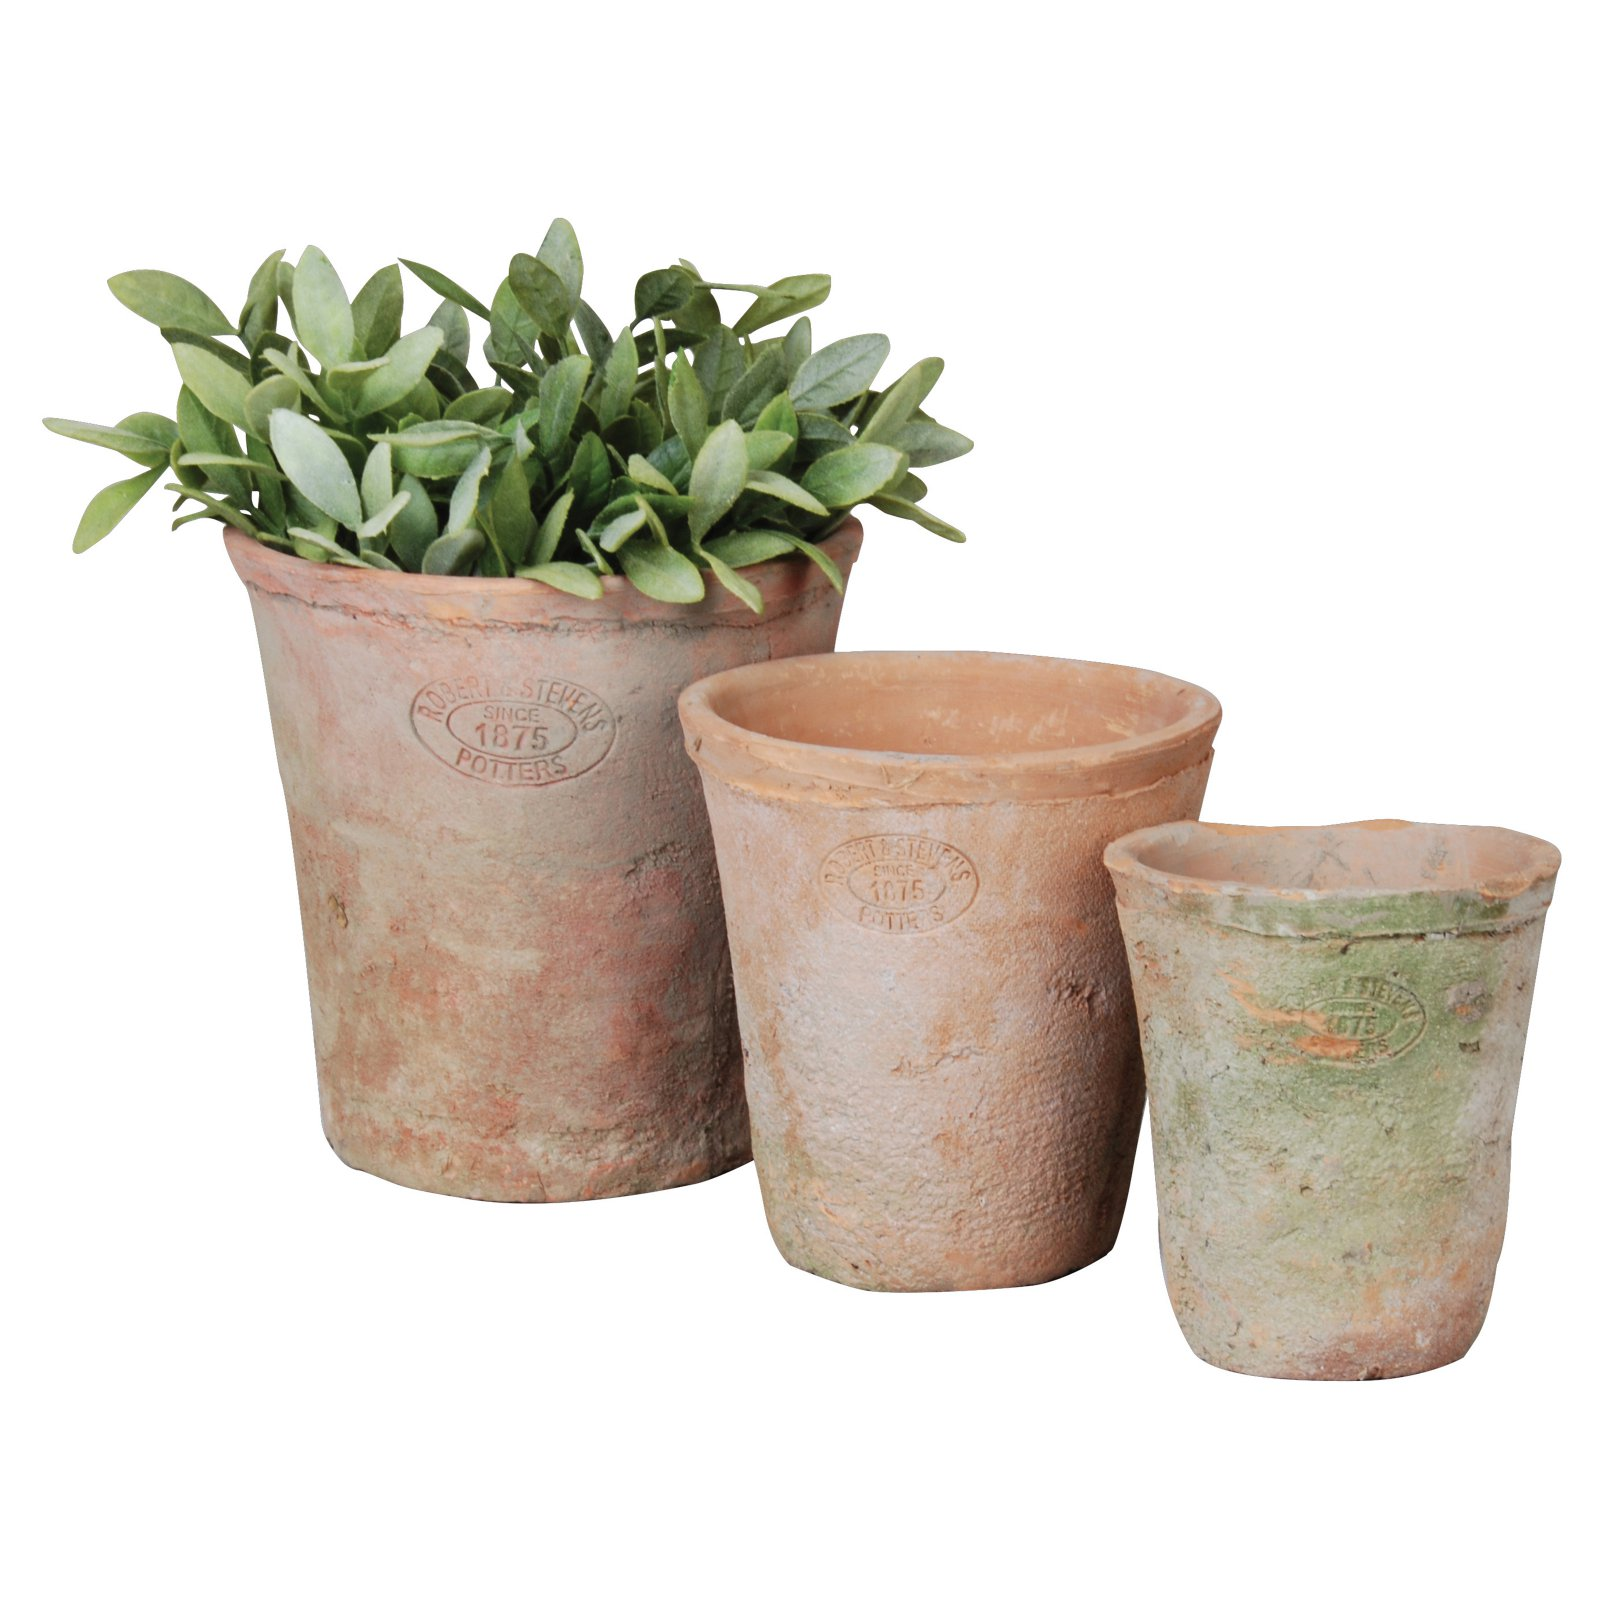 Esschert Design Aged Terracotta Round Pots - Set of 3